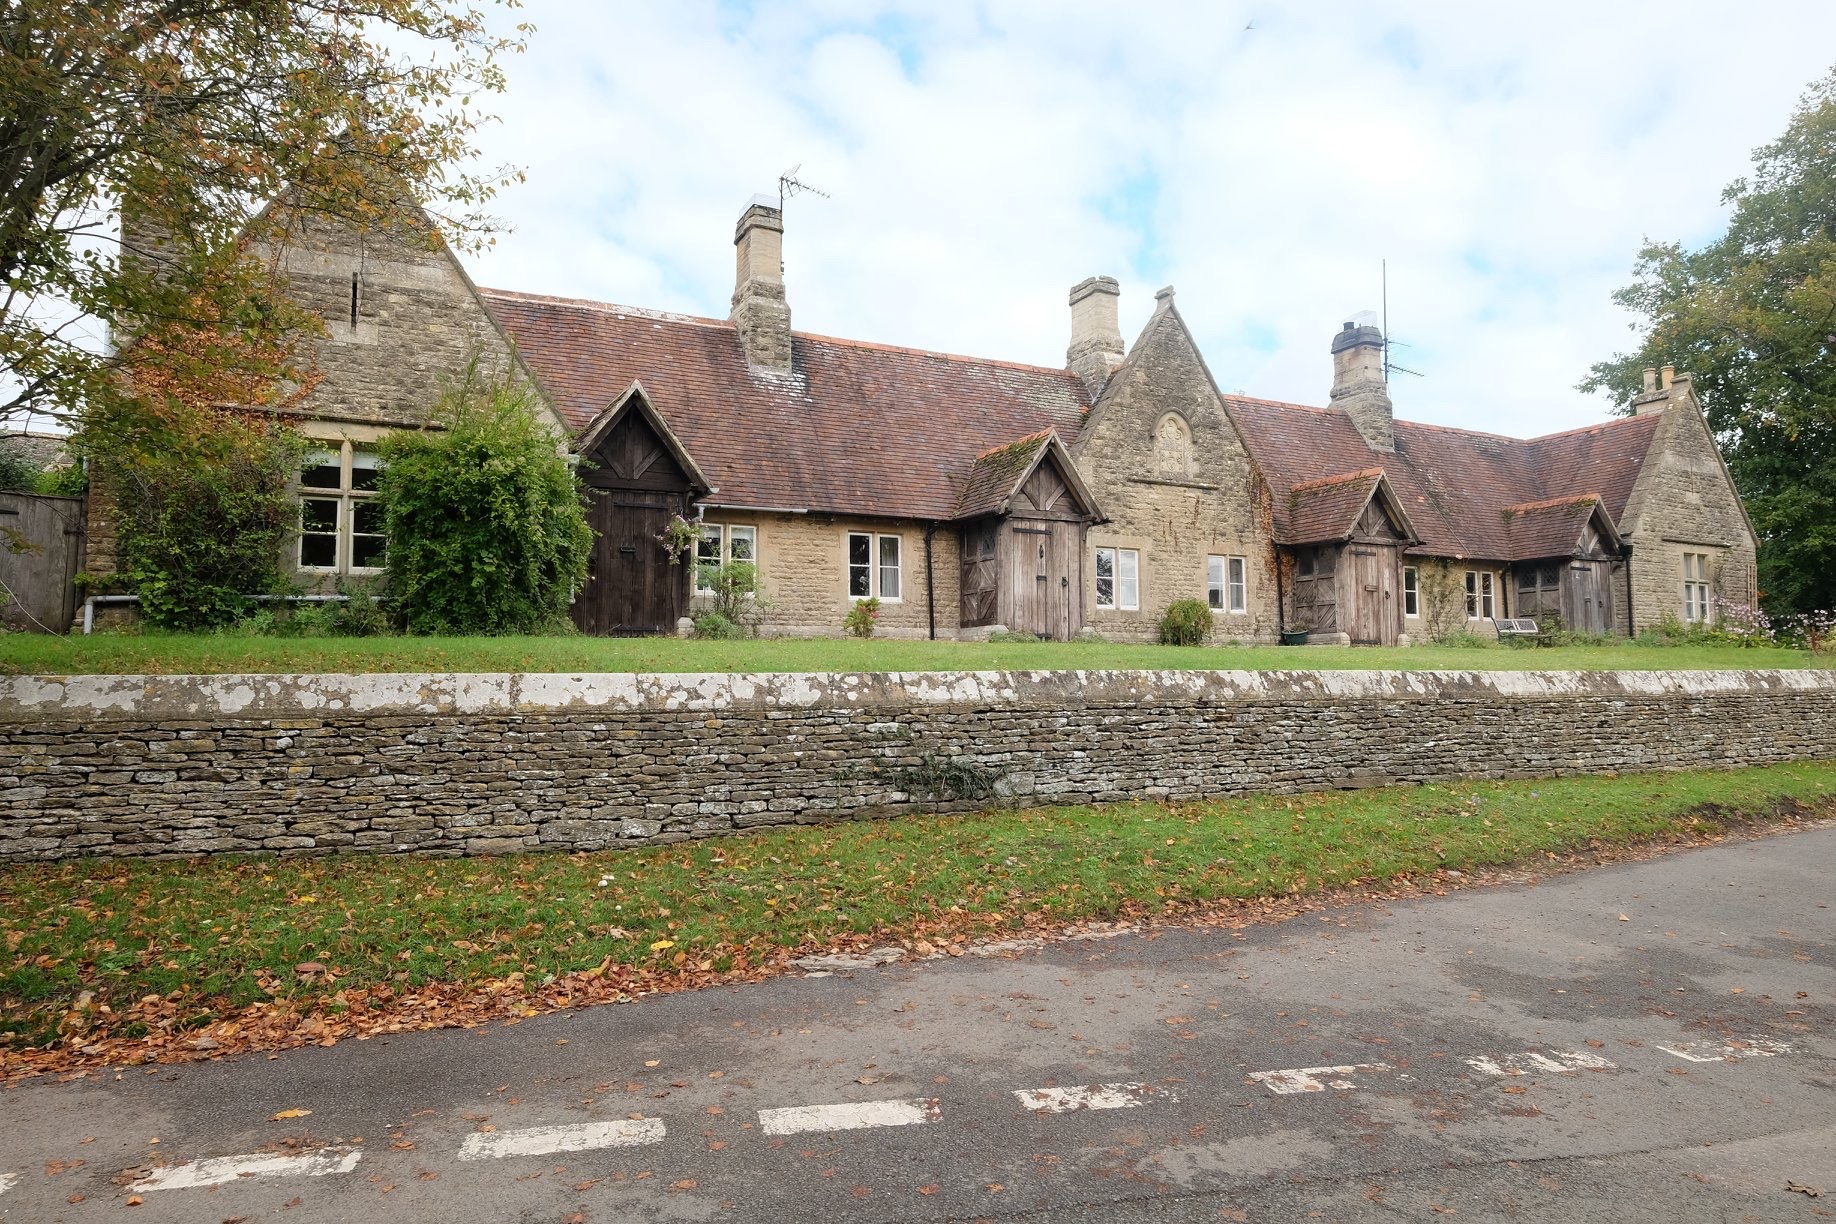 The former Alms houses is now a row of three cottages with a prominent place at the top of the village.